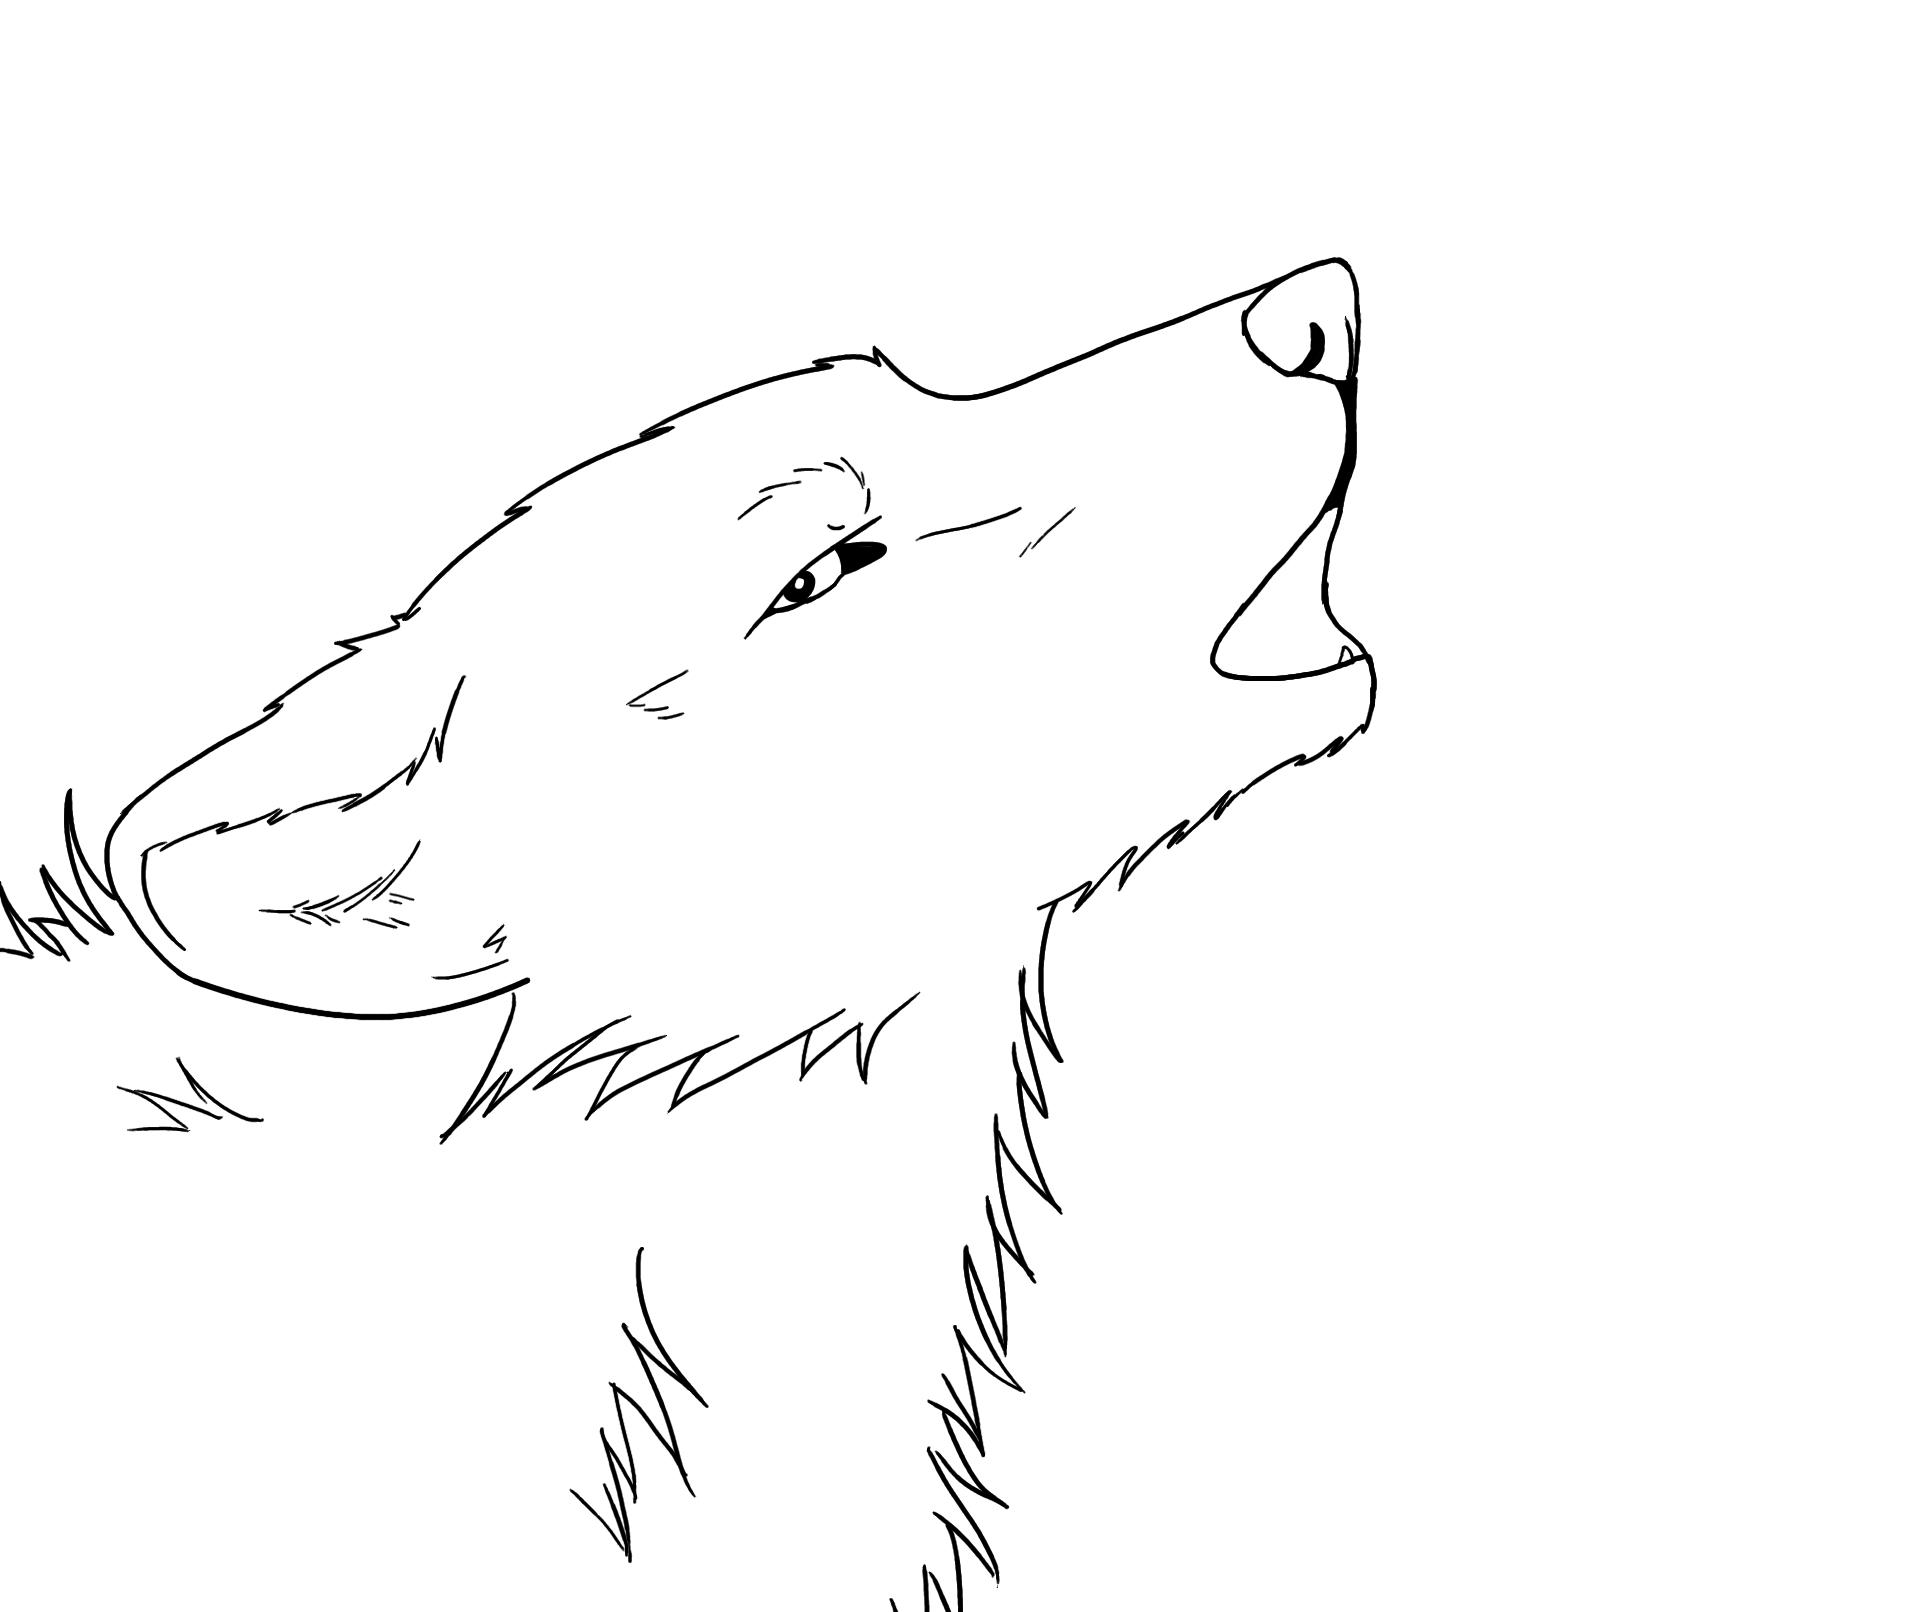 Line Art Gimp : Free howling wolf lineart d gimp by ingloriousbunny on